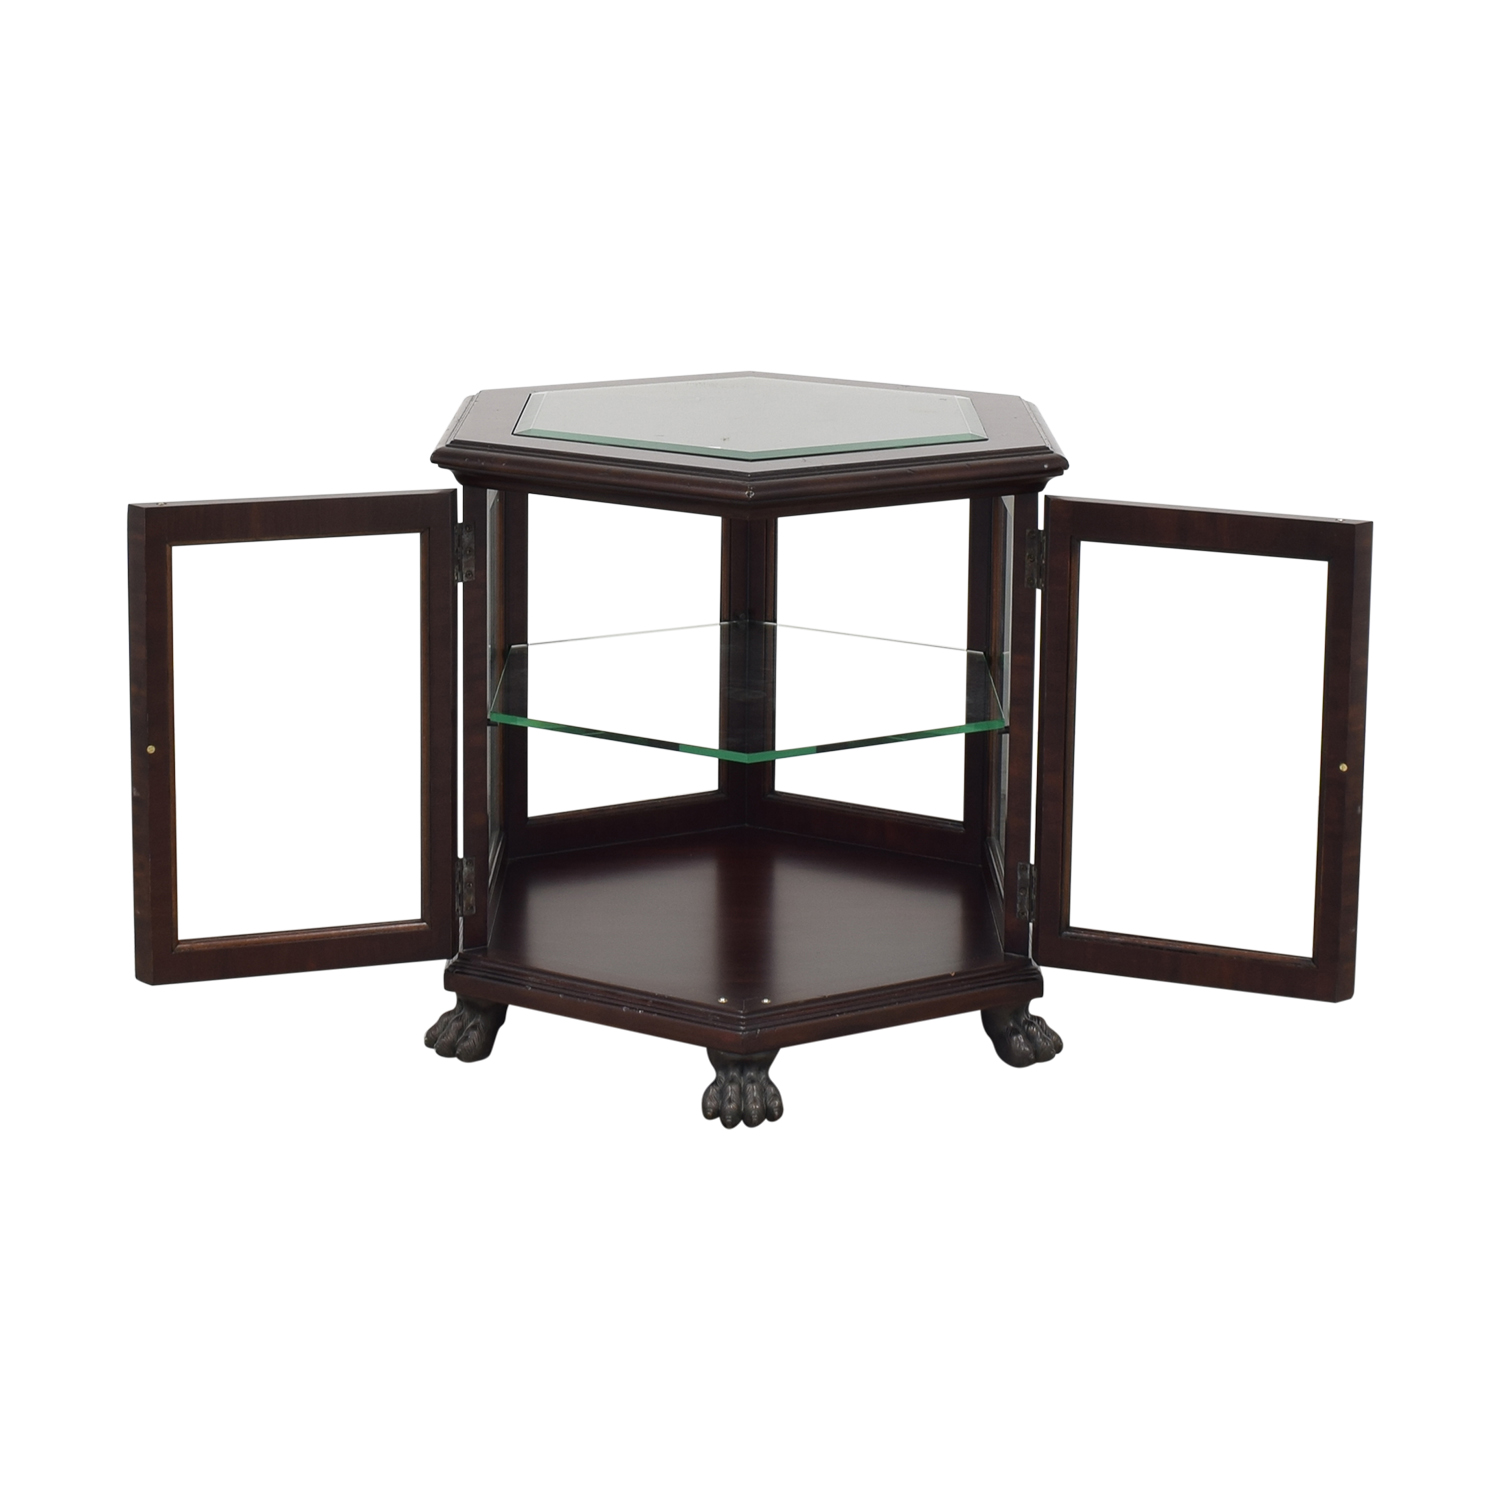 Thomasville End Table with Storage Thomasville